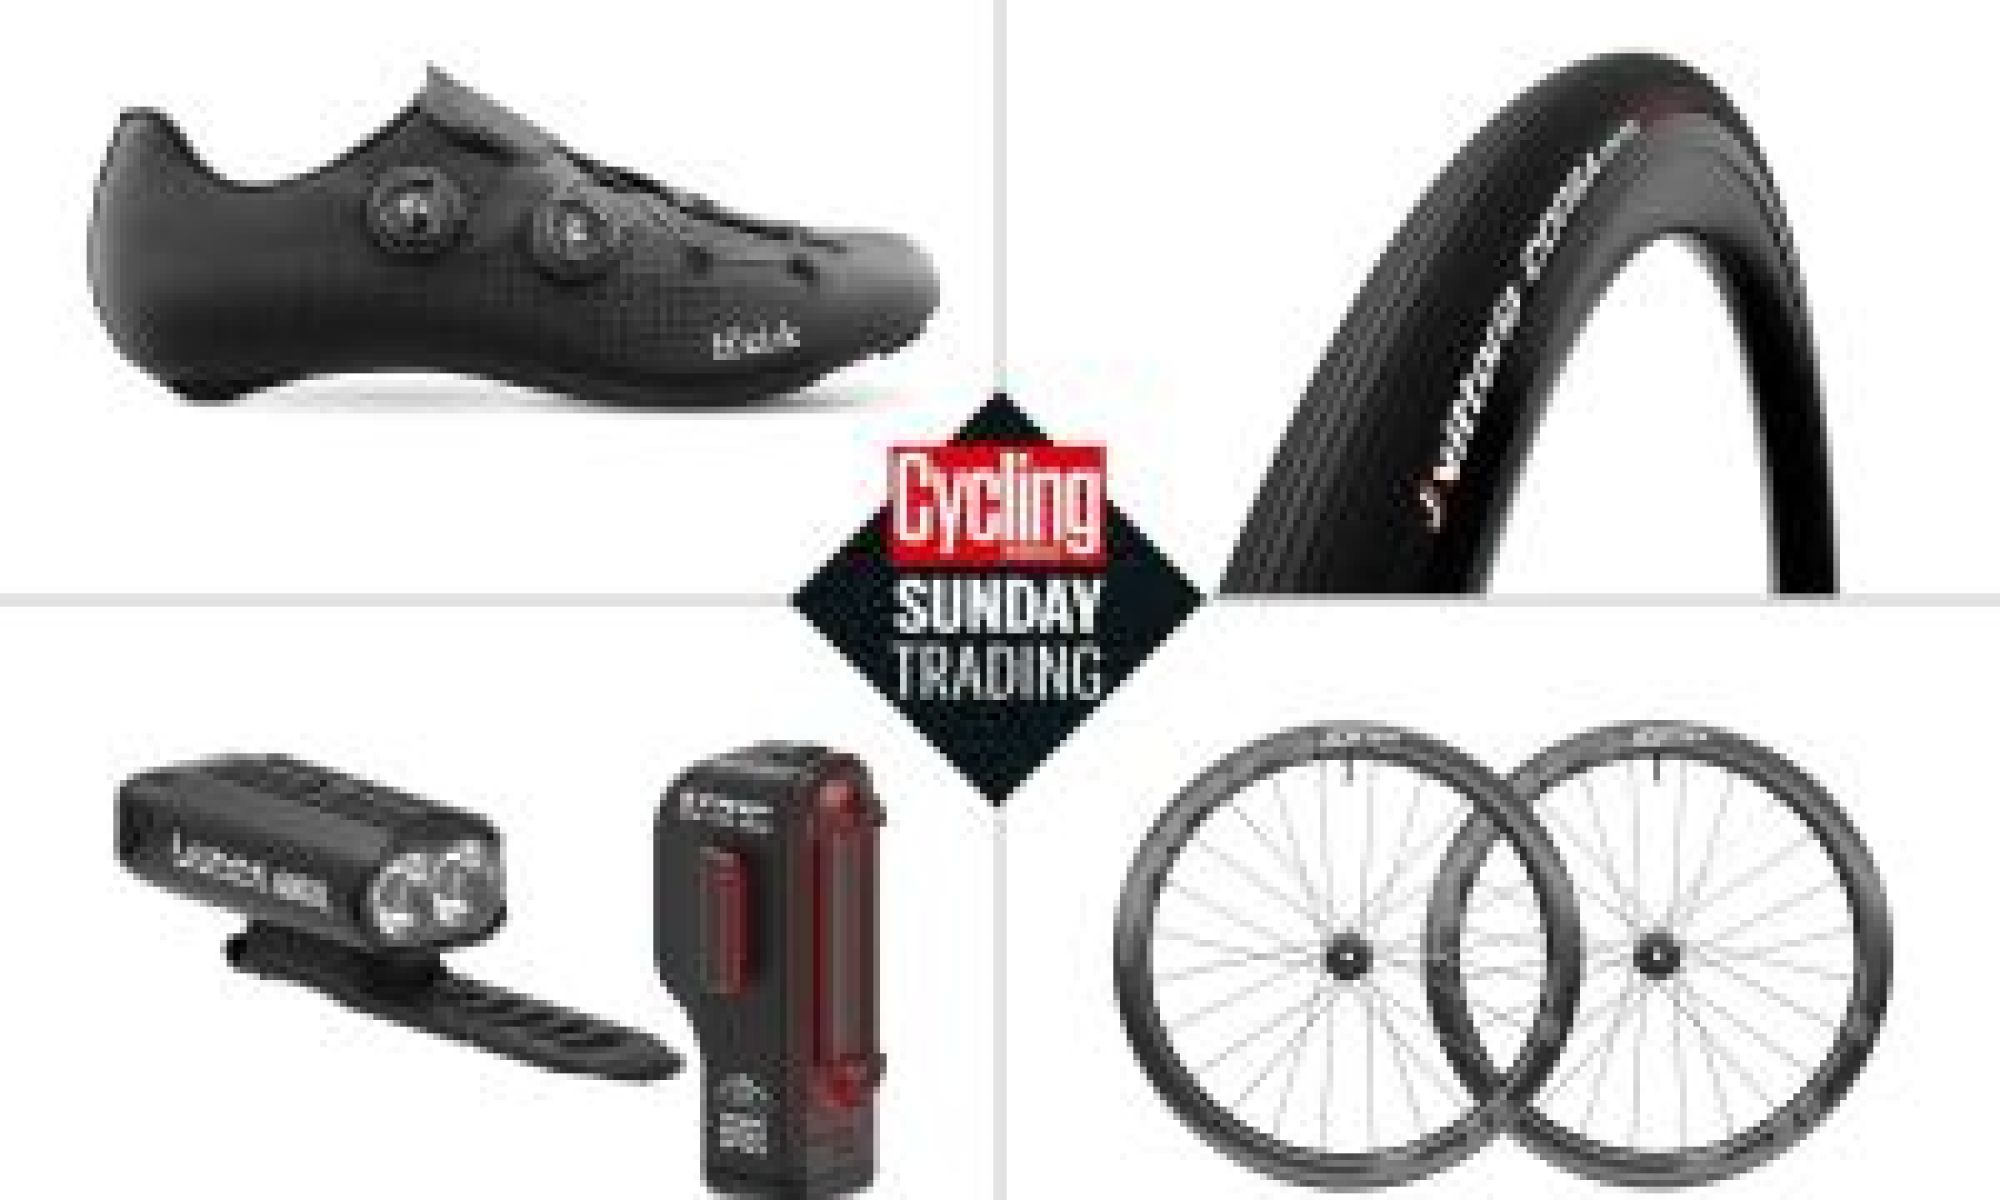 Sunday trading: Discounts on new Zipp 303 S wheels plus offers on bike lights and more